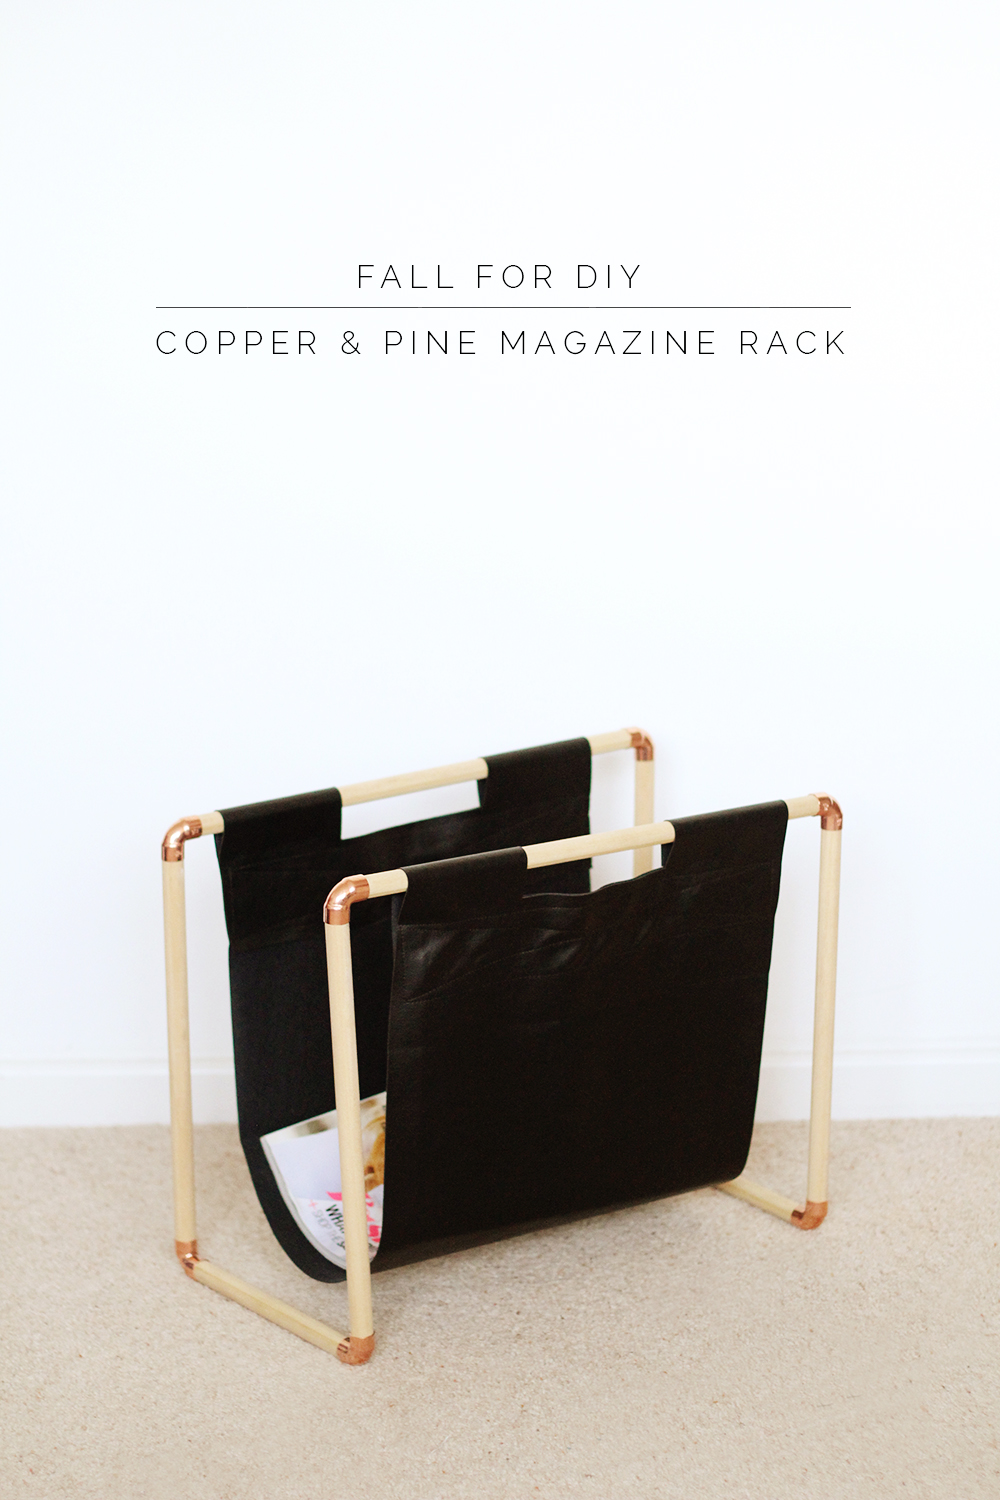 This DIY magazine rack is the perfect spot to put all my Better Homes and Gardens magazines, from Fall For DIY.